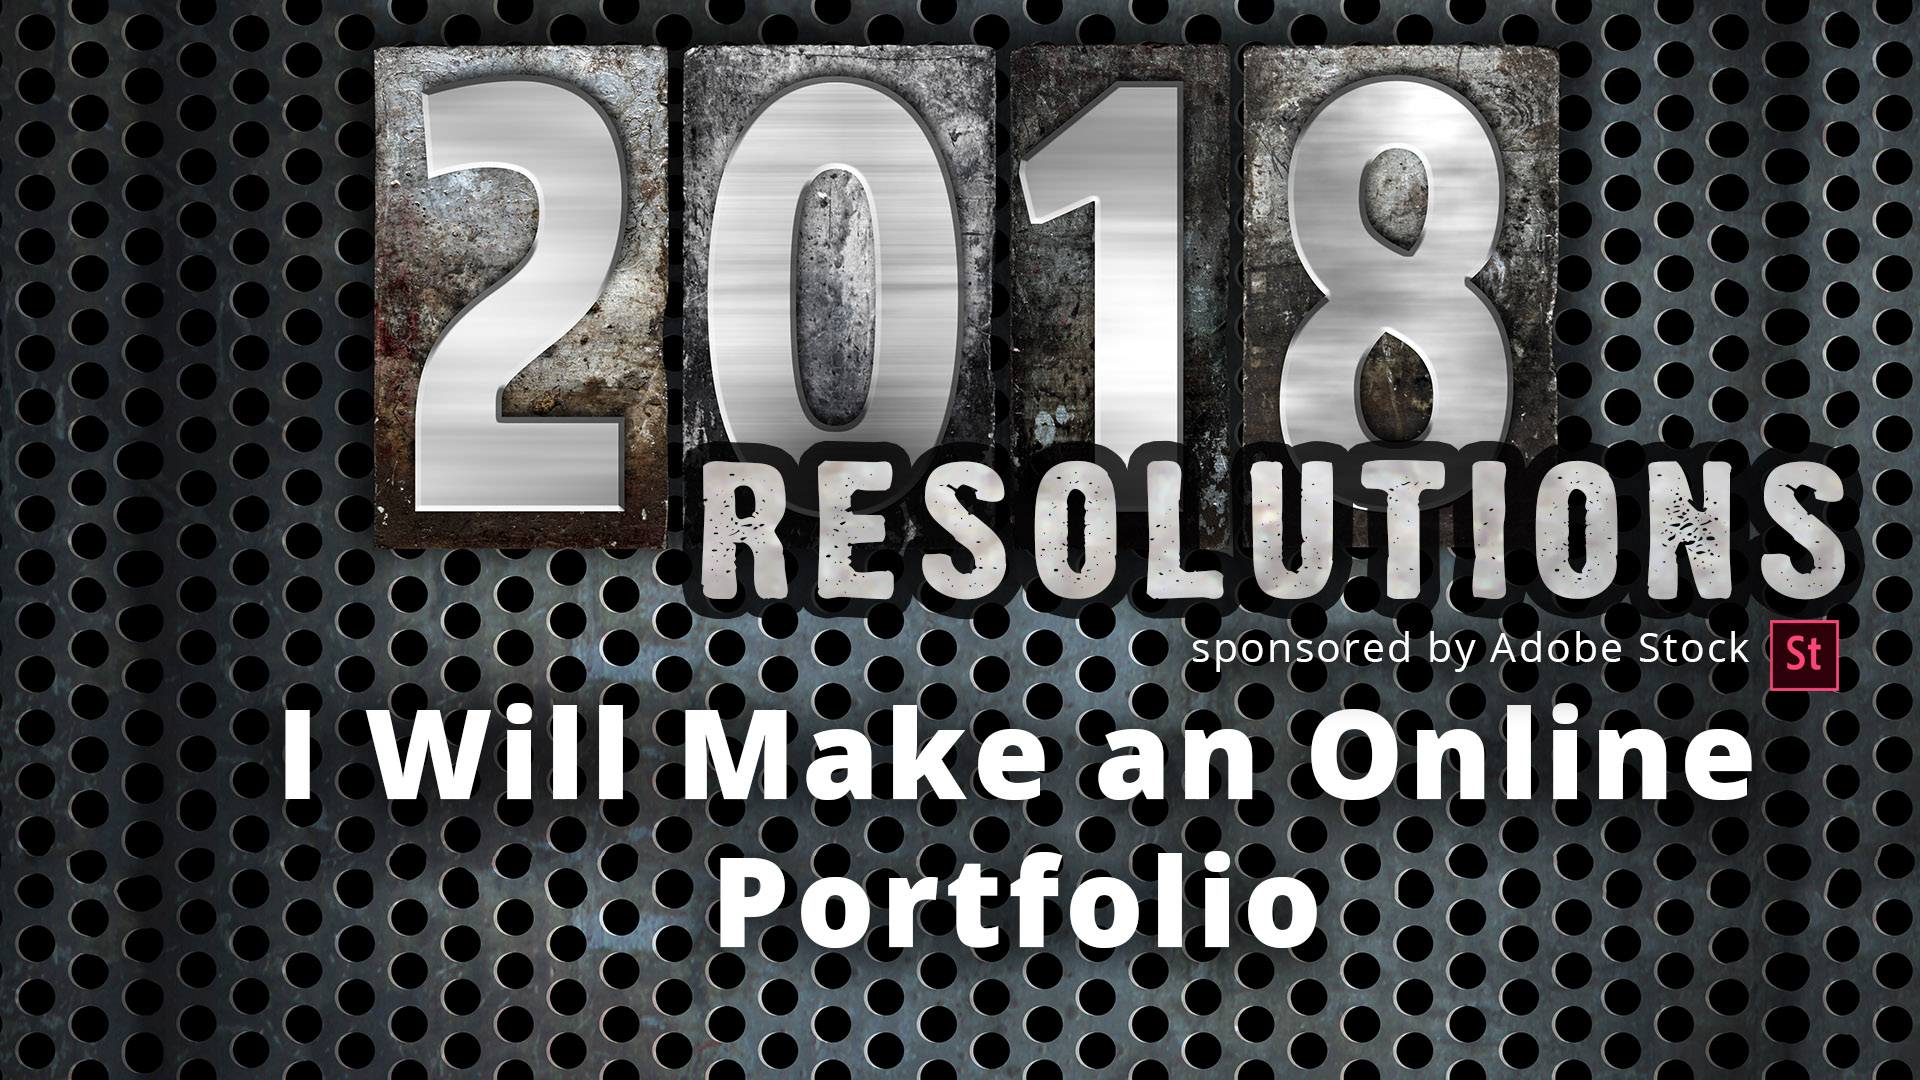 I Will Make Online Portfolios webinar sponsored by Adobe Stock